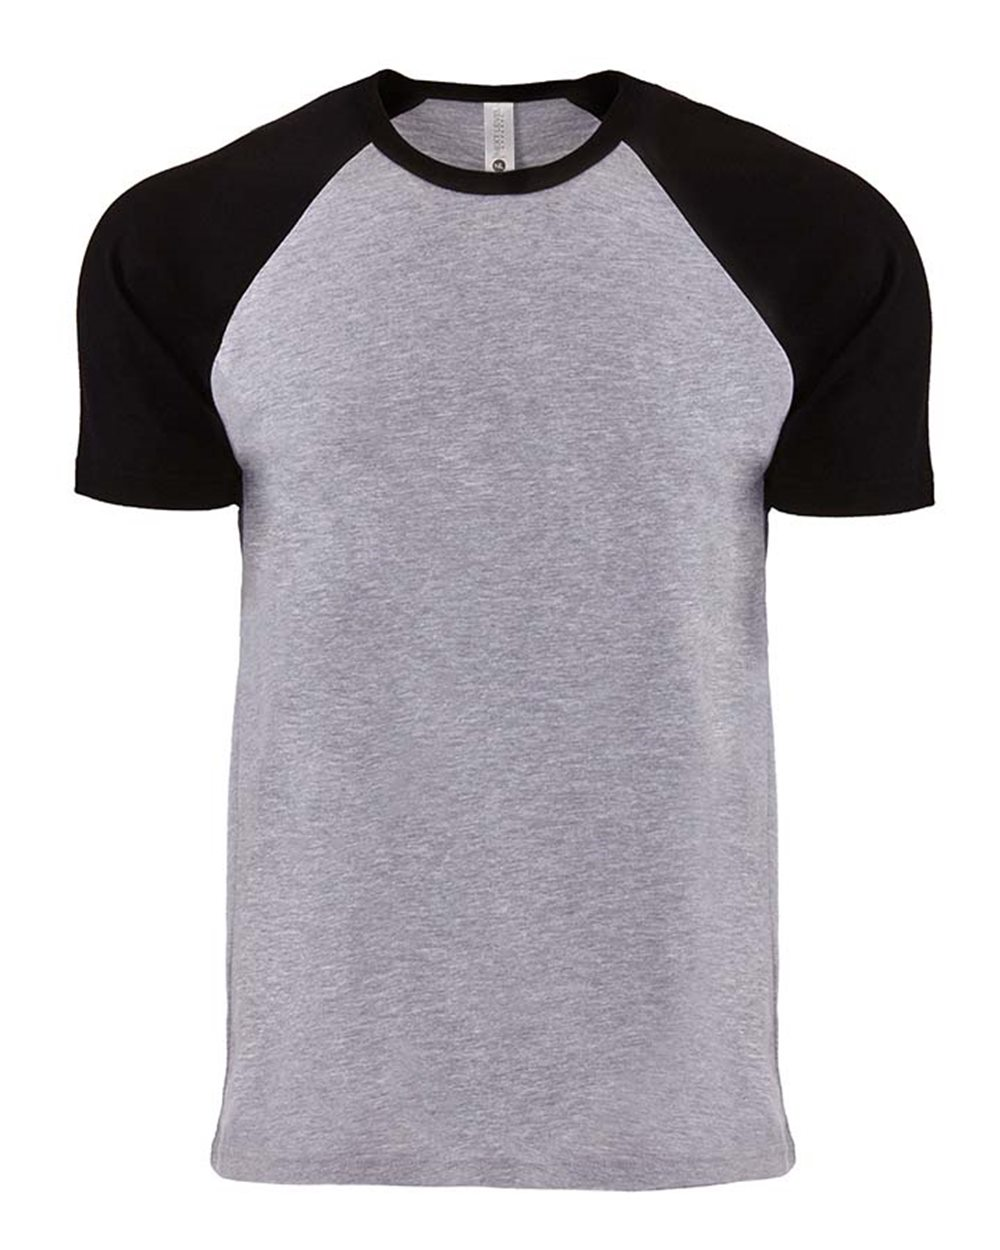 Next Level Apparel 3650 - Unisex Cotton Raglan Tee